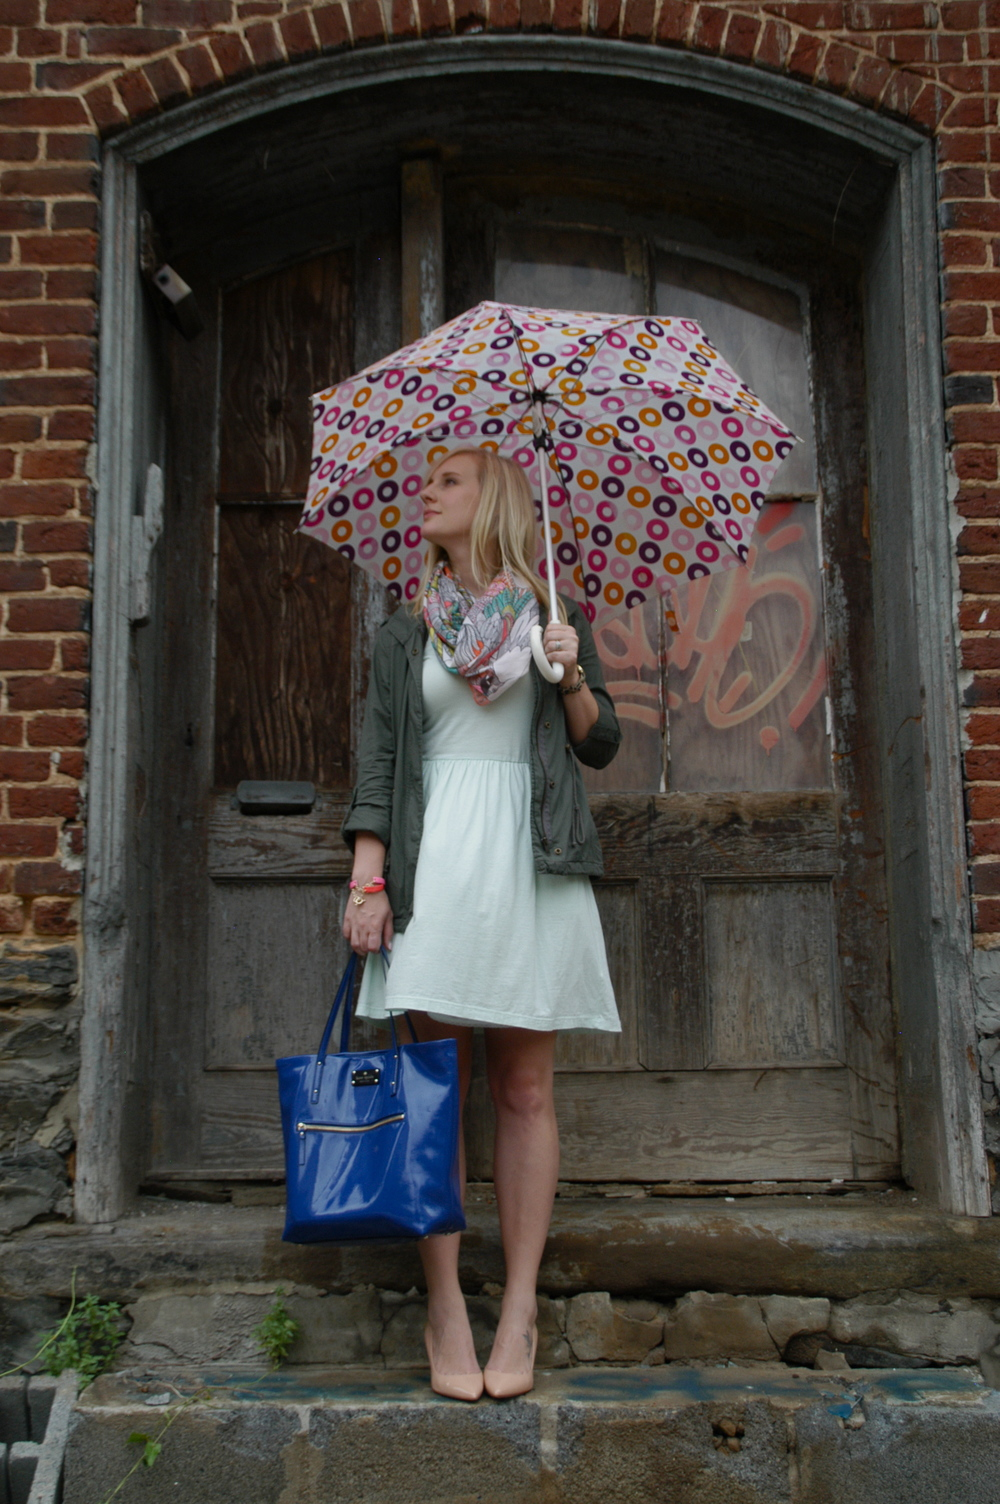 Dress: H&M | Jacket: JCPenney (a.n.a. brand) | Scarf: H&M | Bag: Kate Spade | Shoes: J.Crew | Umbrella: Target | Jewelry: Target & H&M